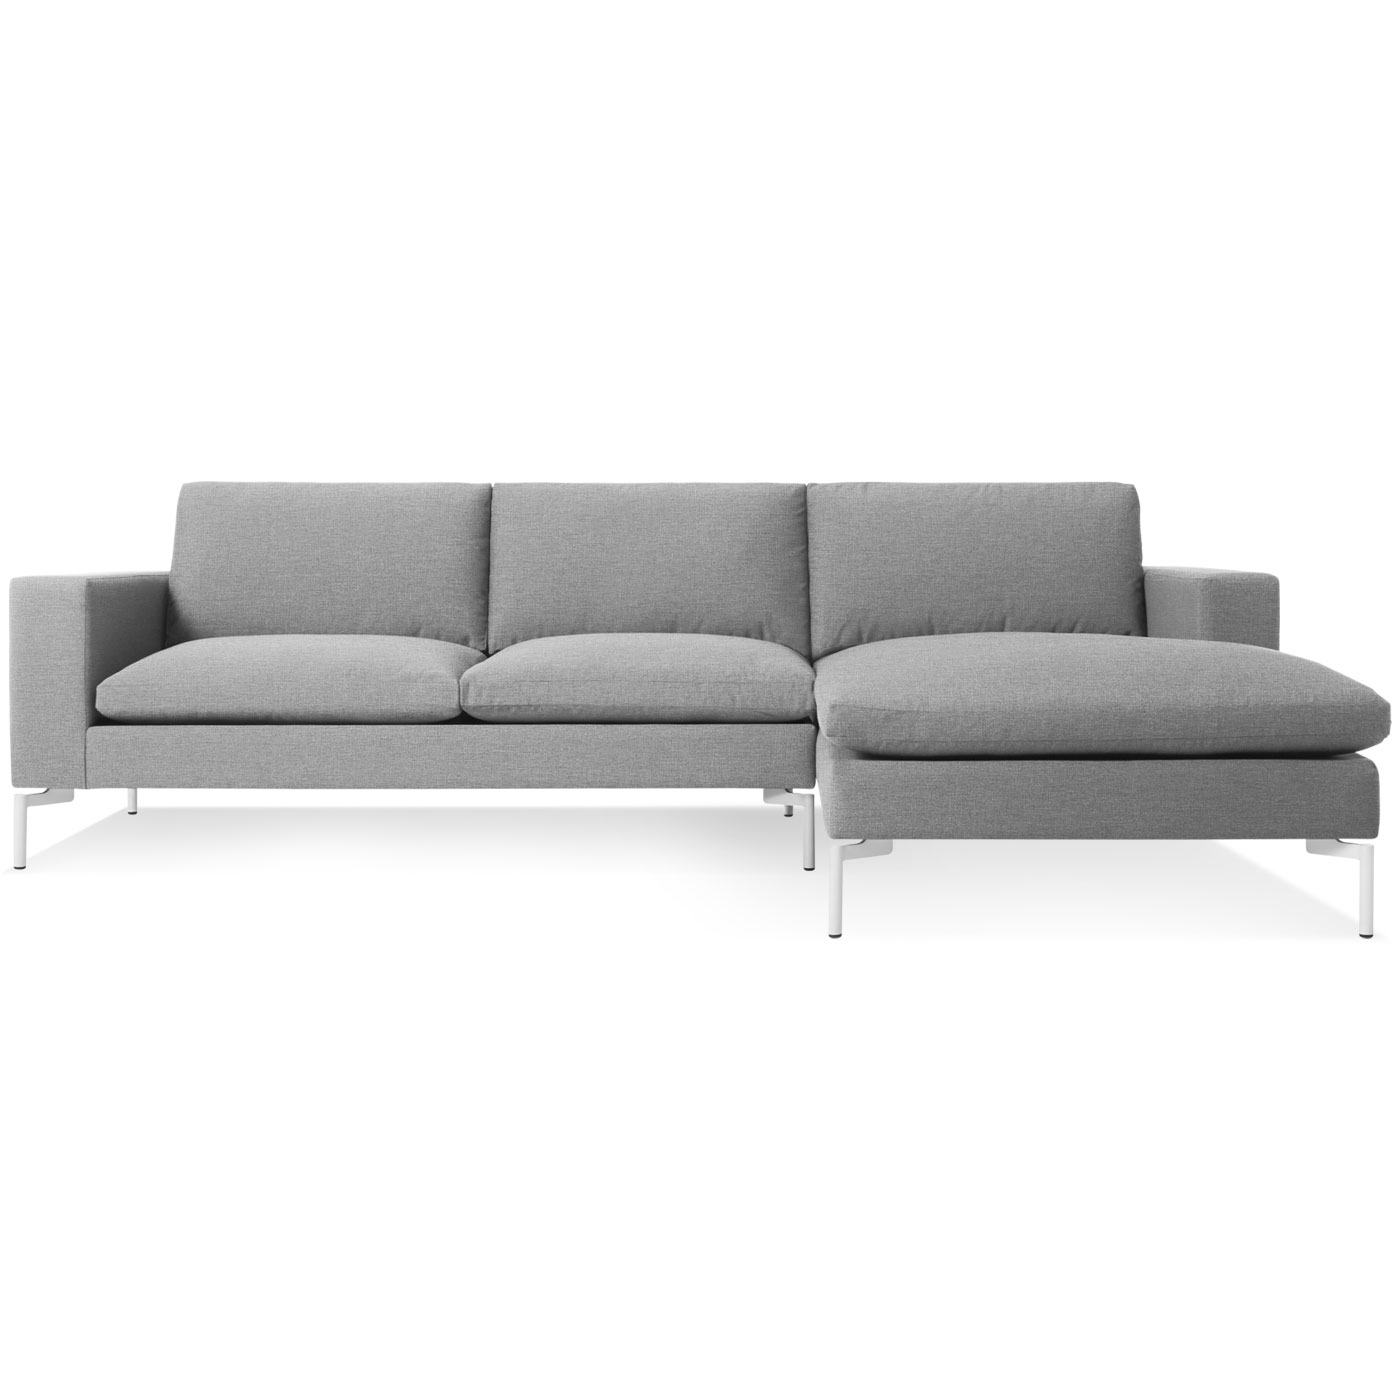 Gray Couches With Chaise Regarding Preferred New Standard Modern Chaise Sofa – Left Chaise (Gallery 9 of 15)